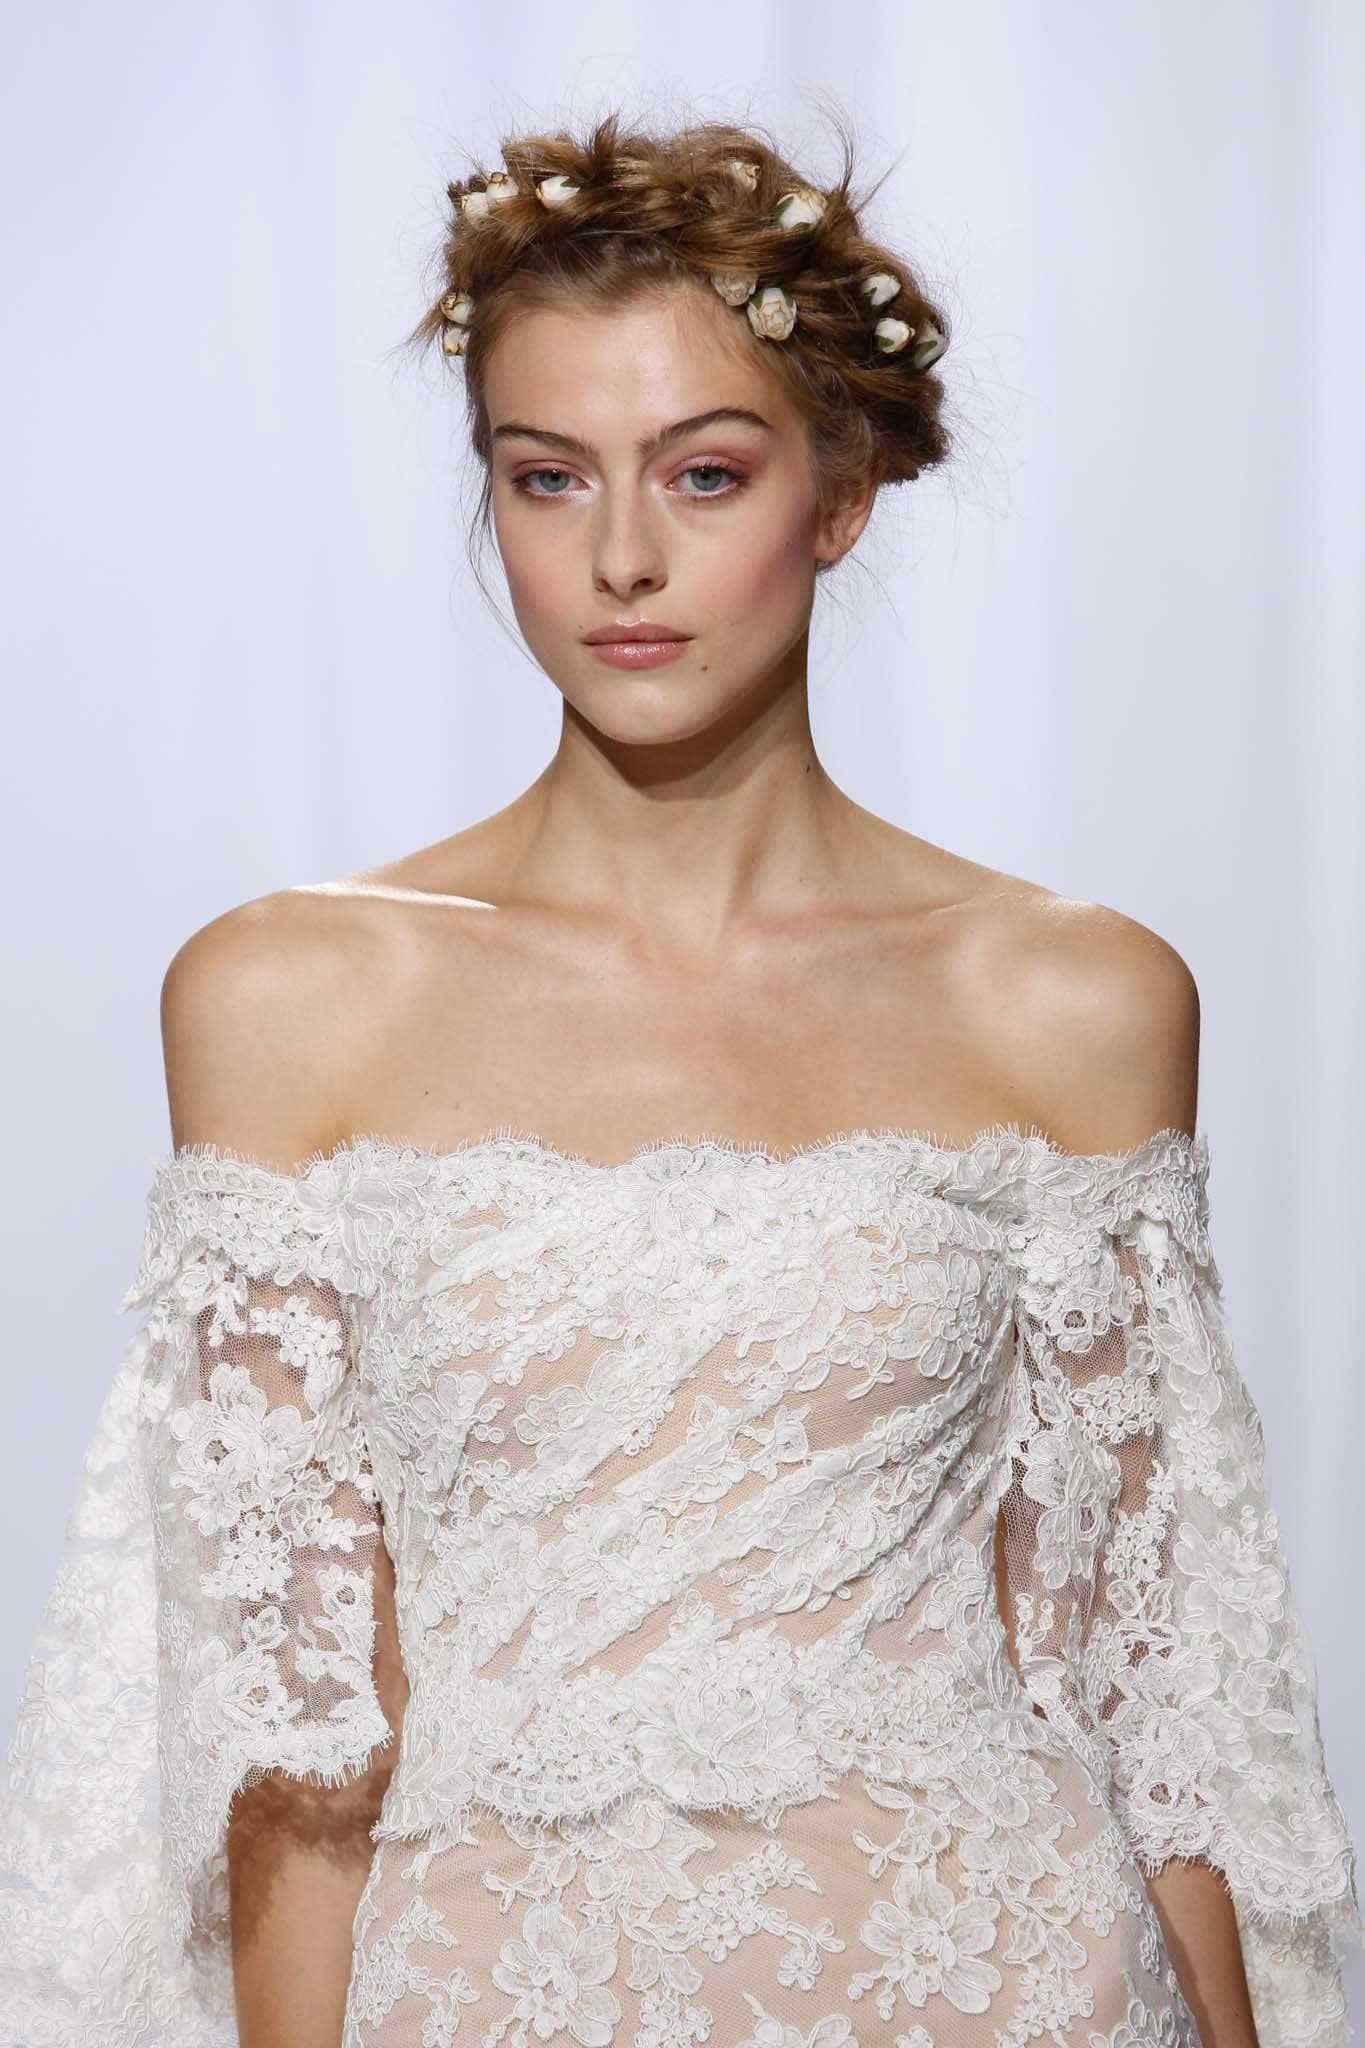 Romantic Wedding Short Haircut for Your Amazing Day! 1